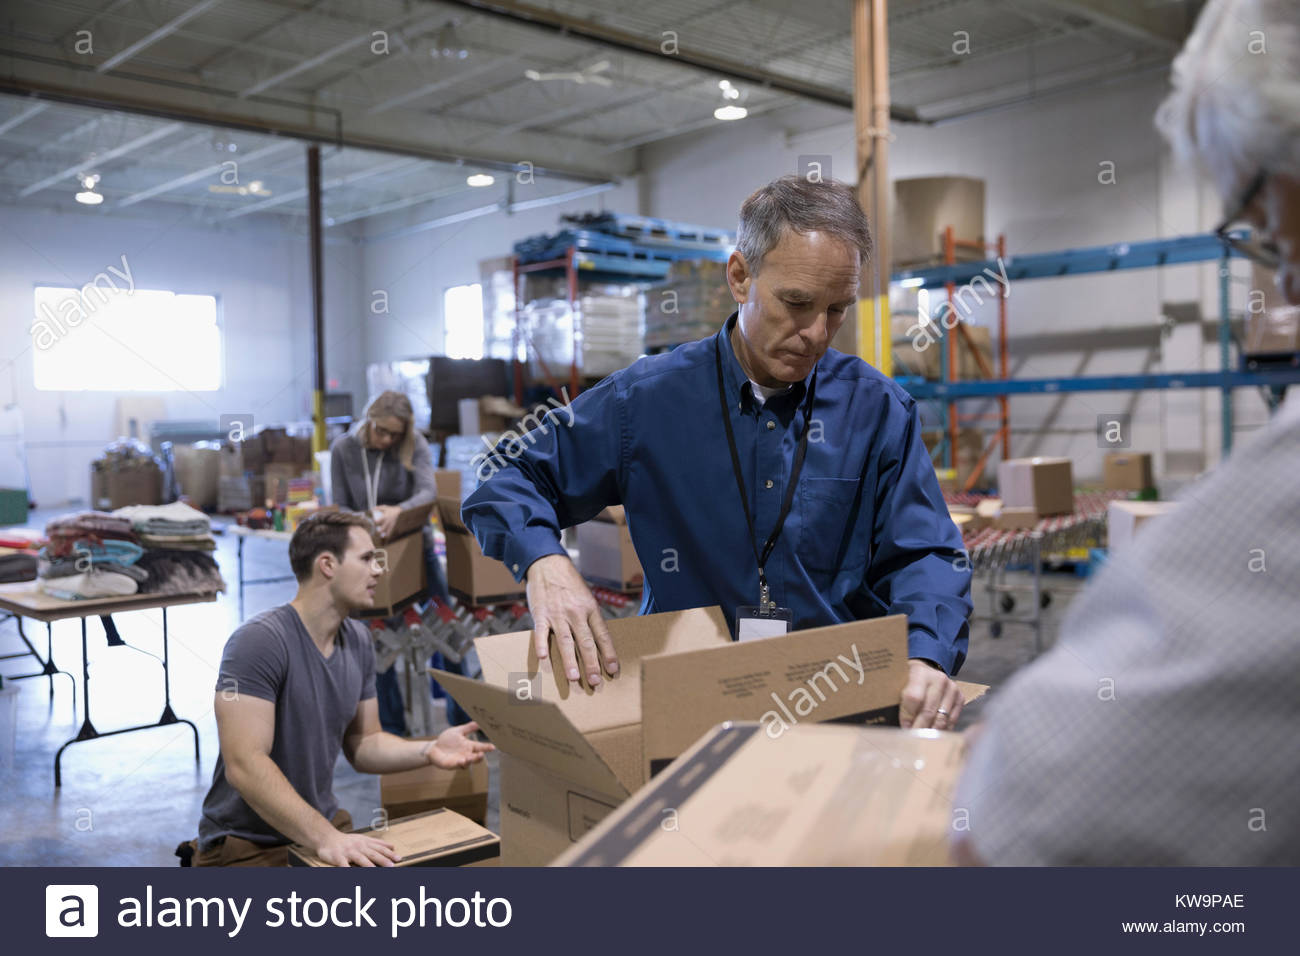 Male volunteer packing box for food drive in warehouse - Stock Image